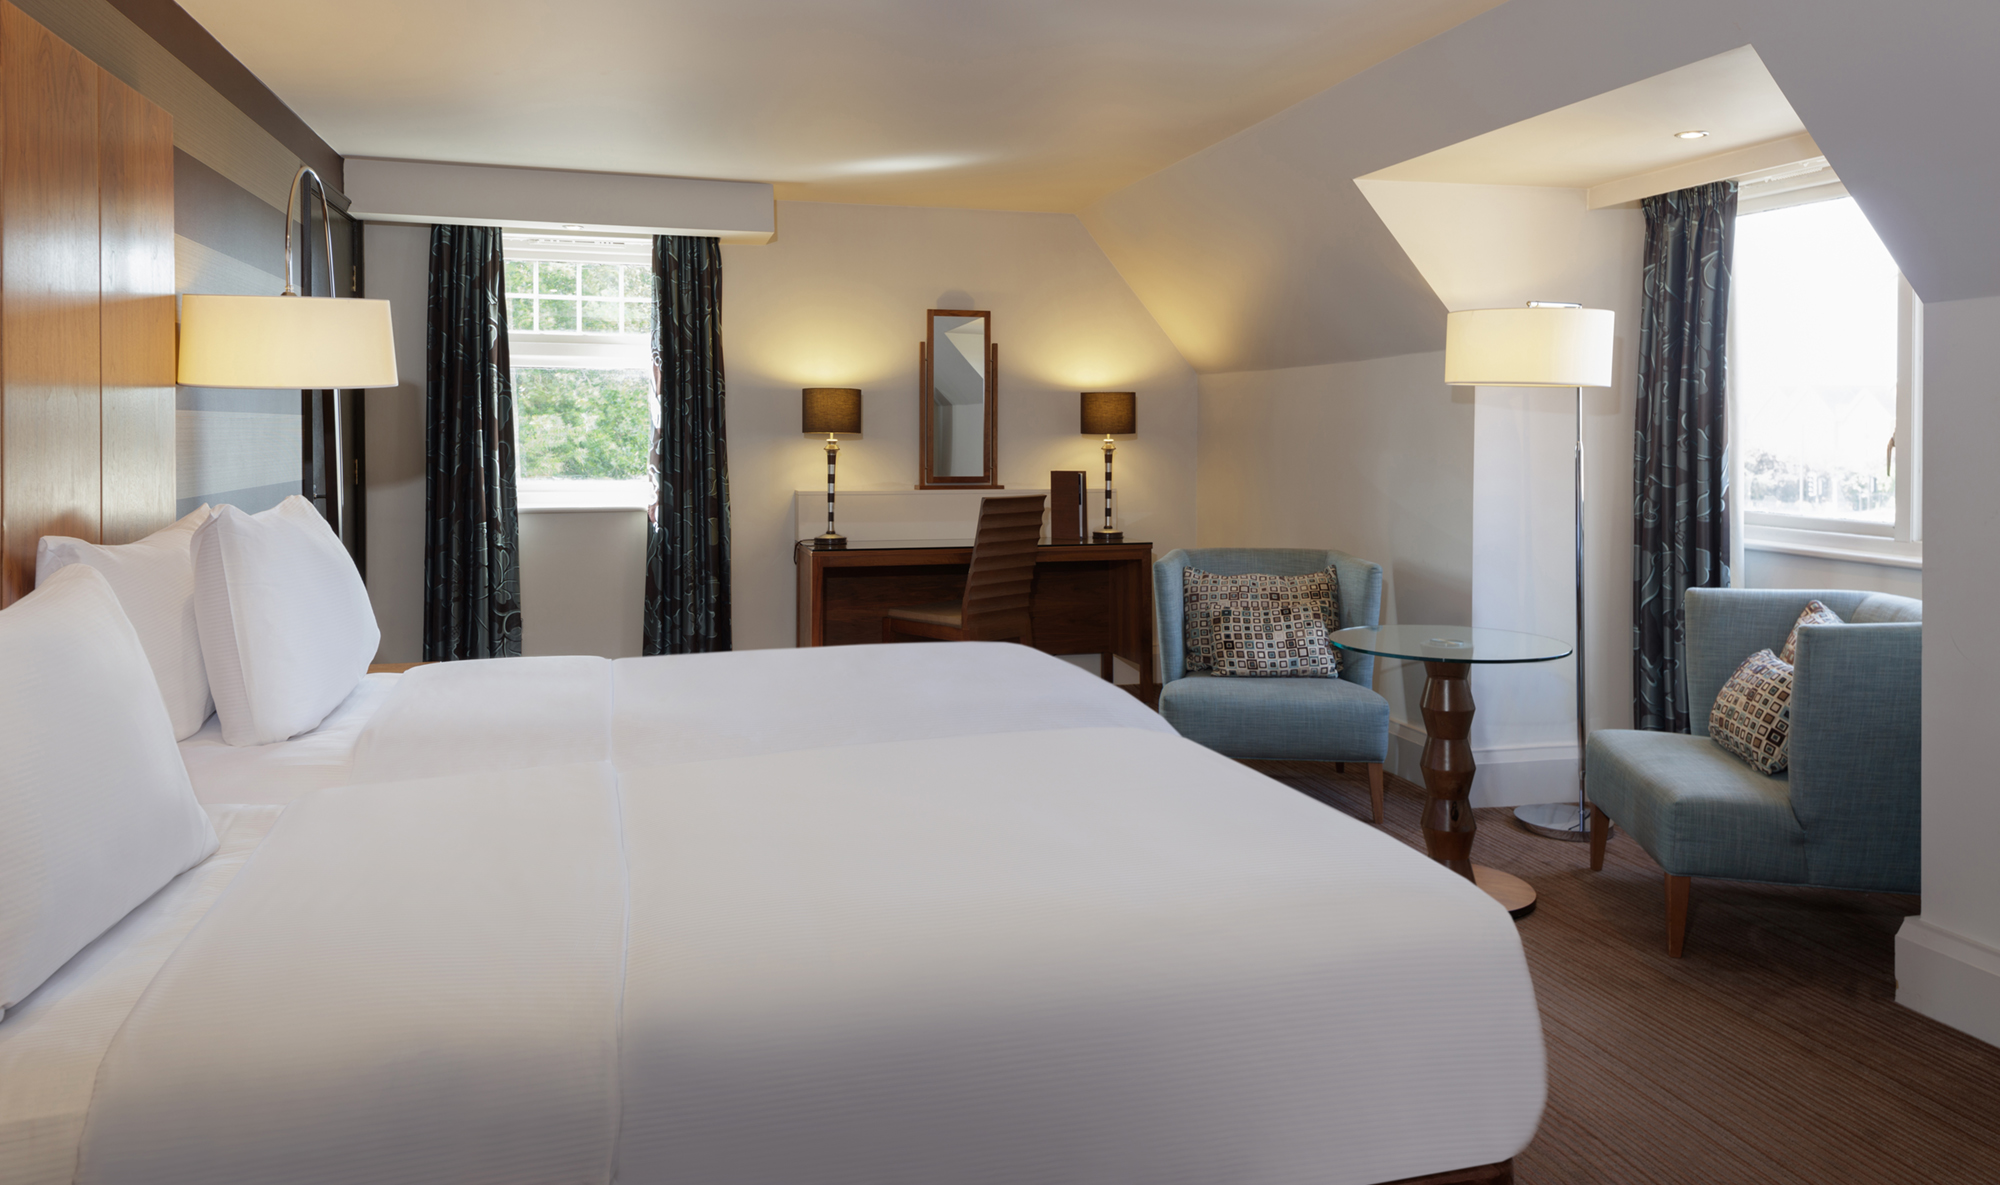 bedroom doubletree by hilton stratford-upon-avon